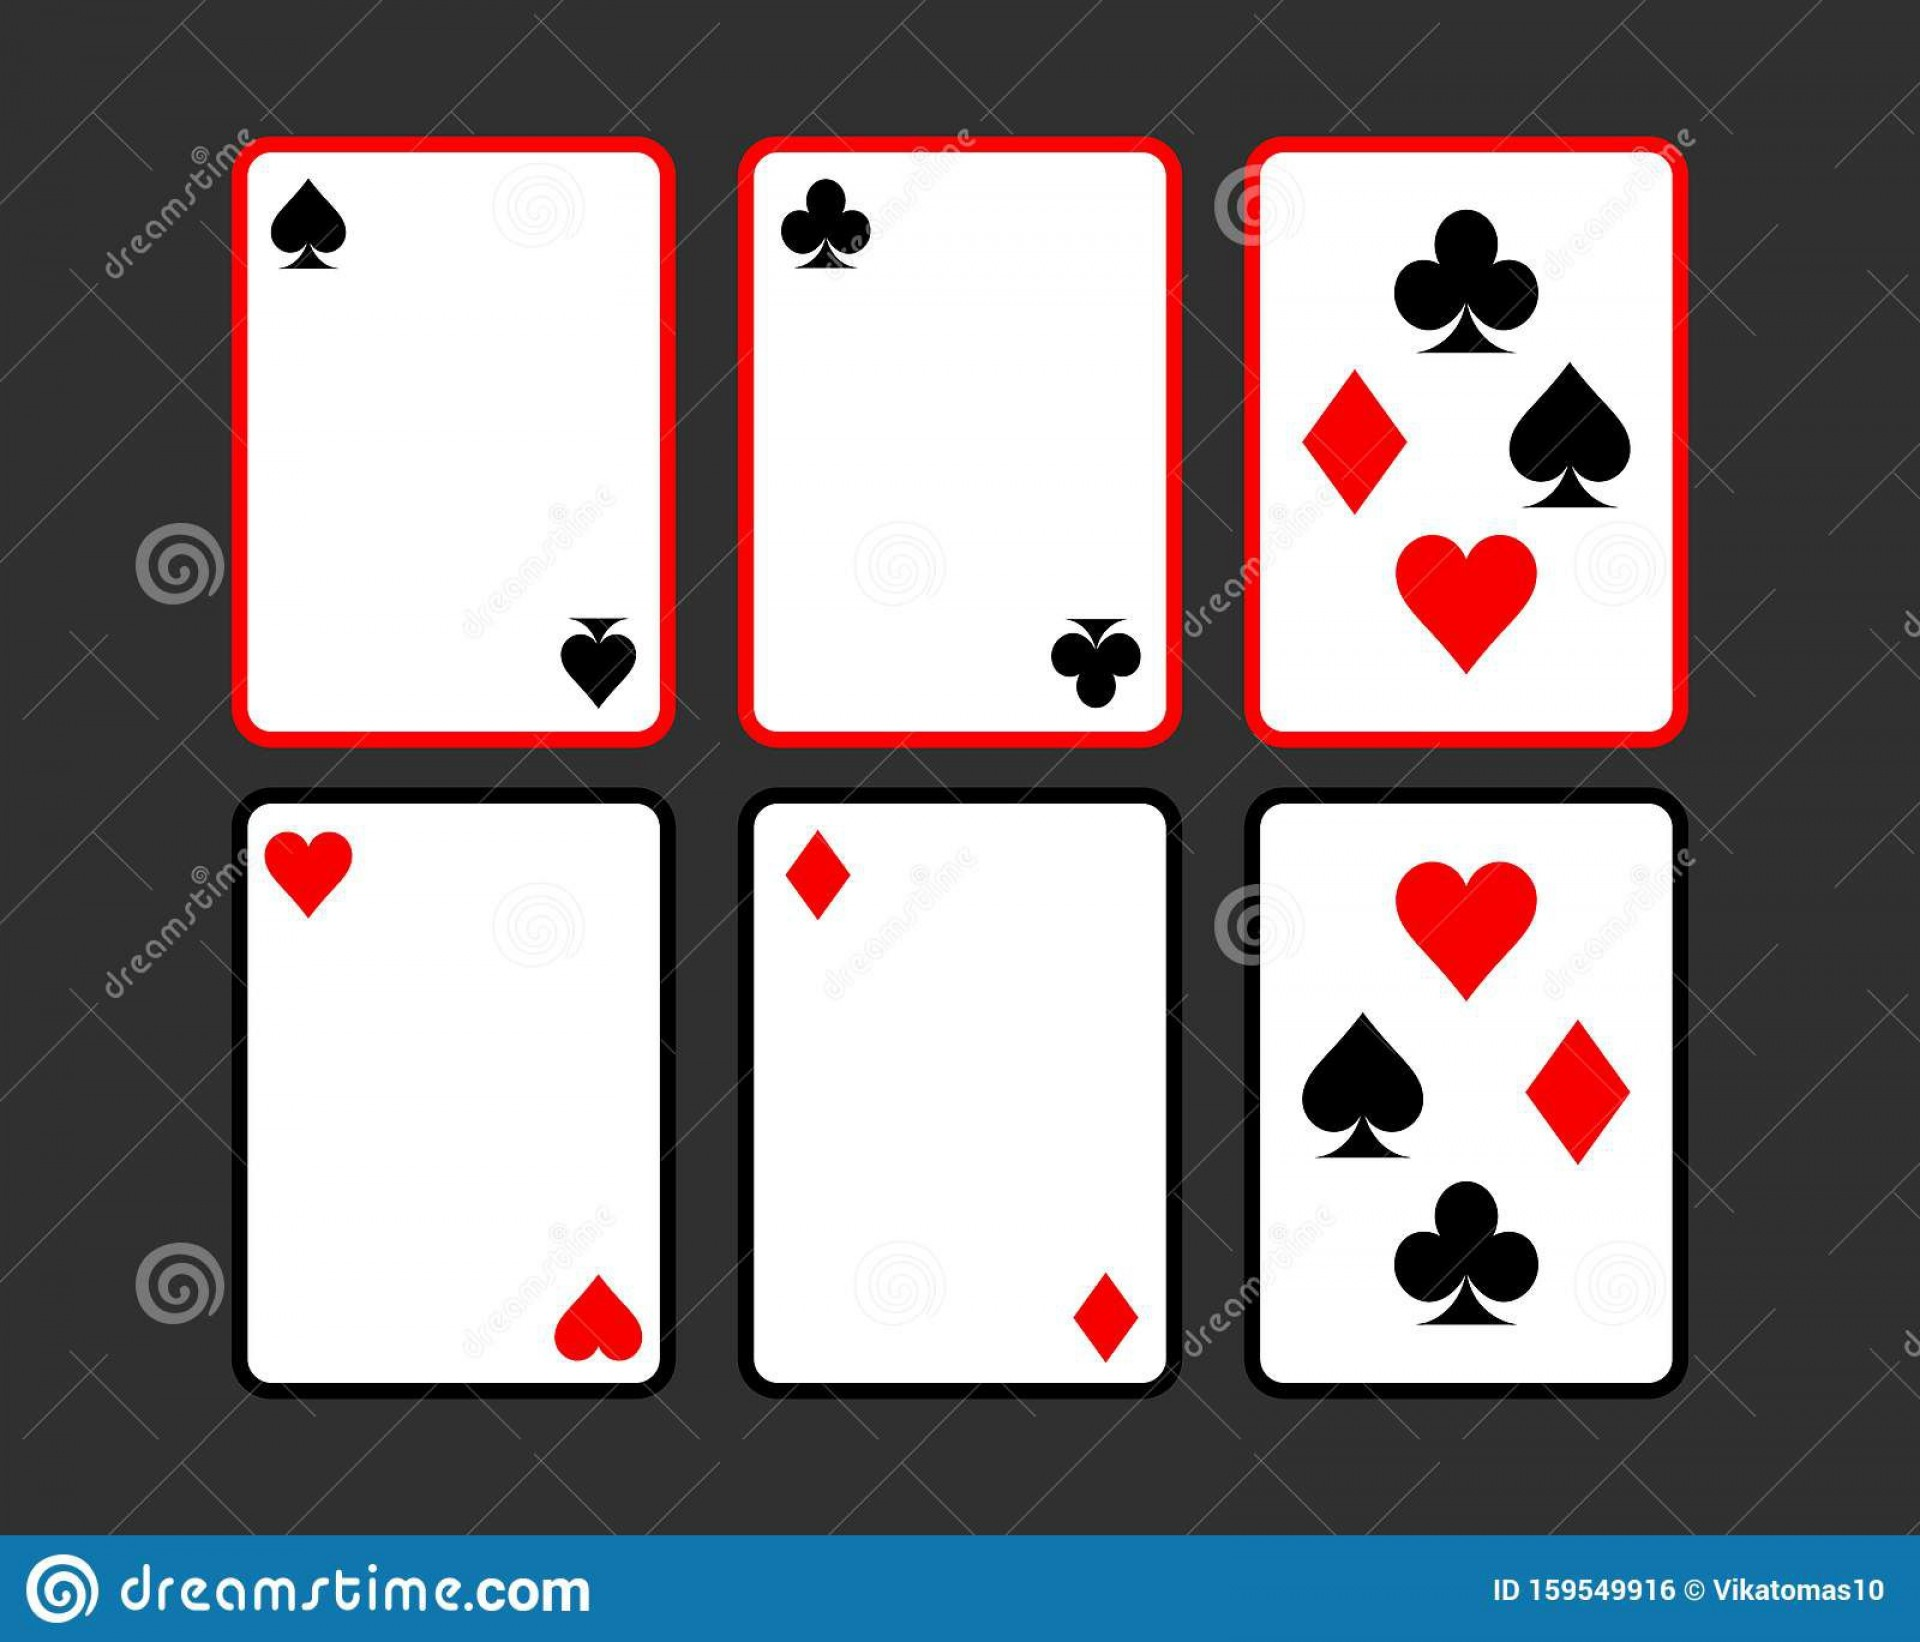 009 Unbelievable Playing Card Template Free Download High Resolution  Blank1920